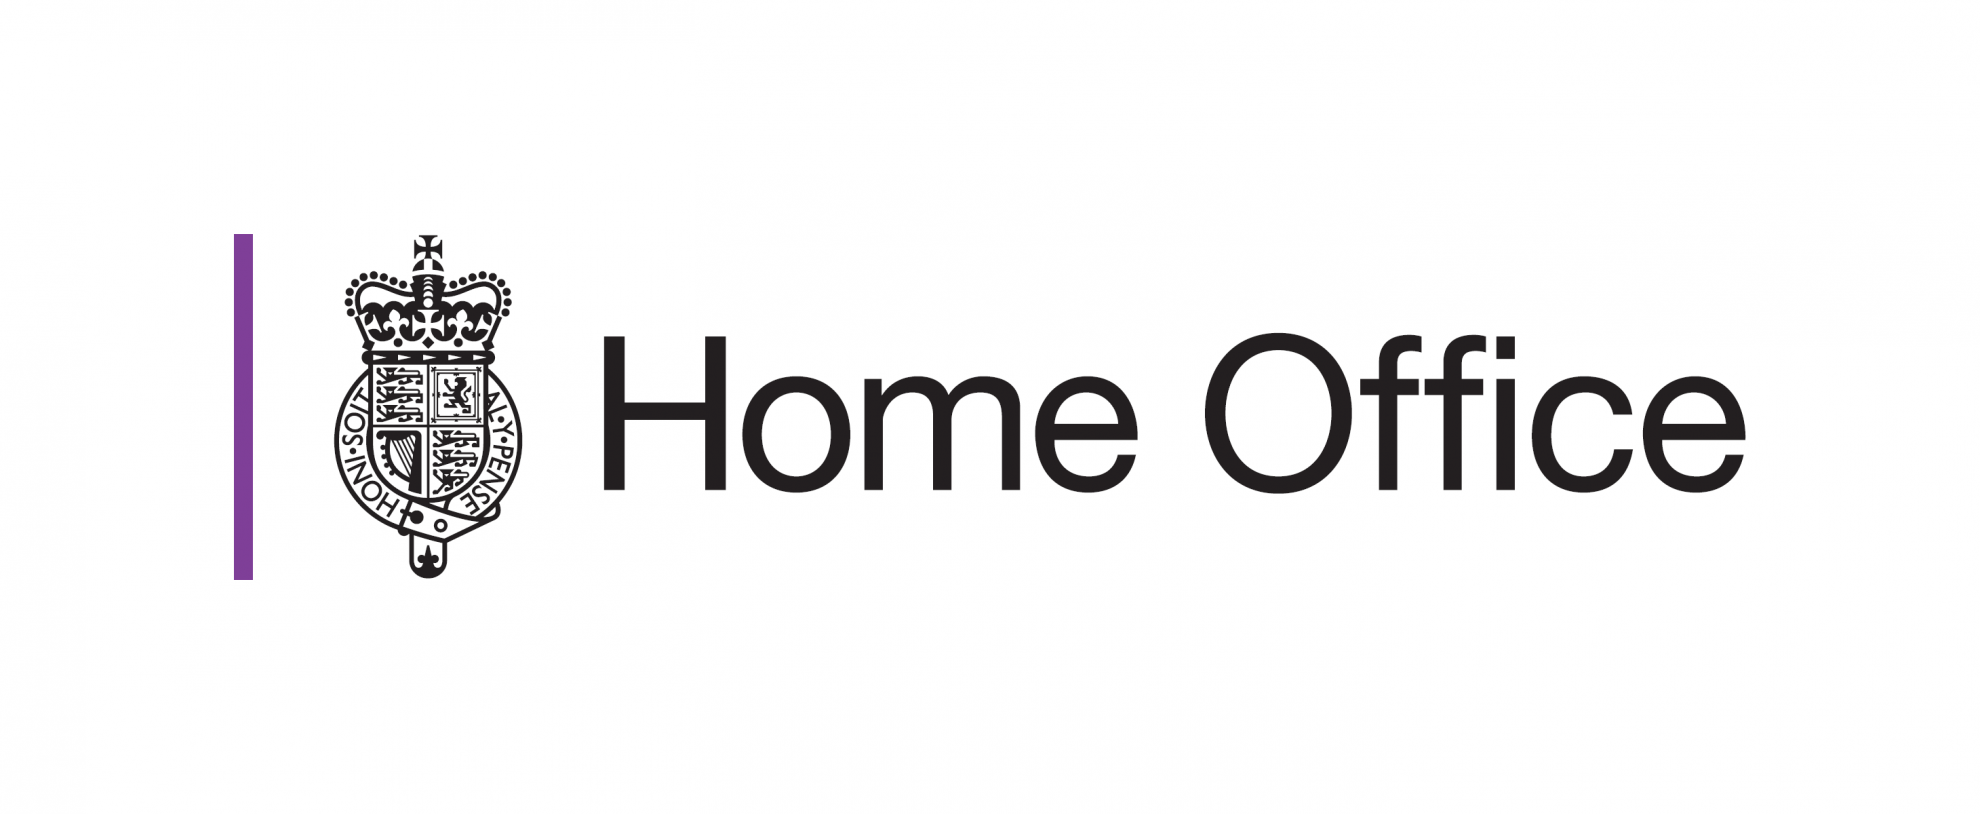 Home Office (logo)